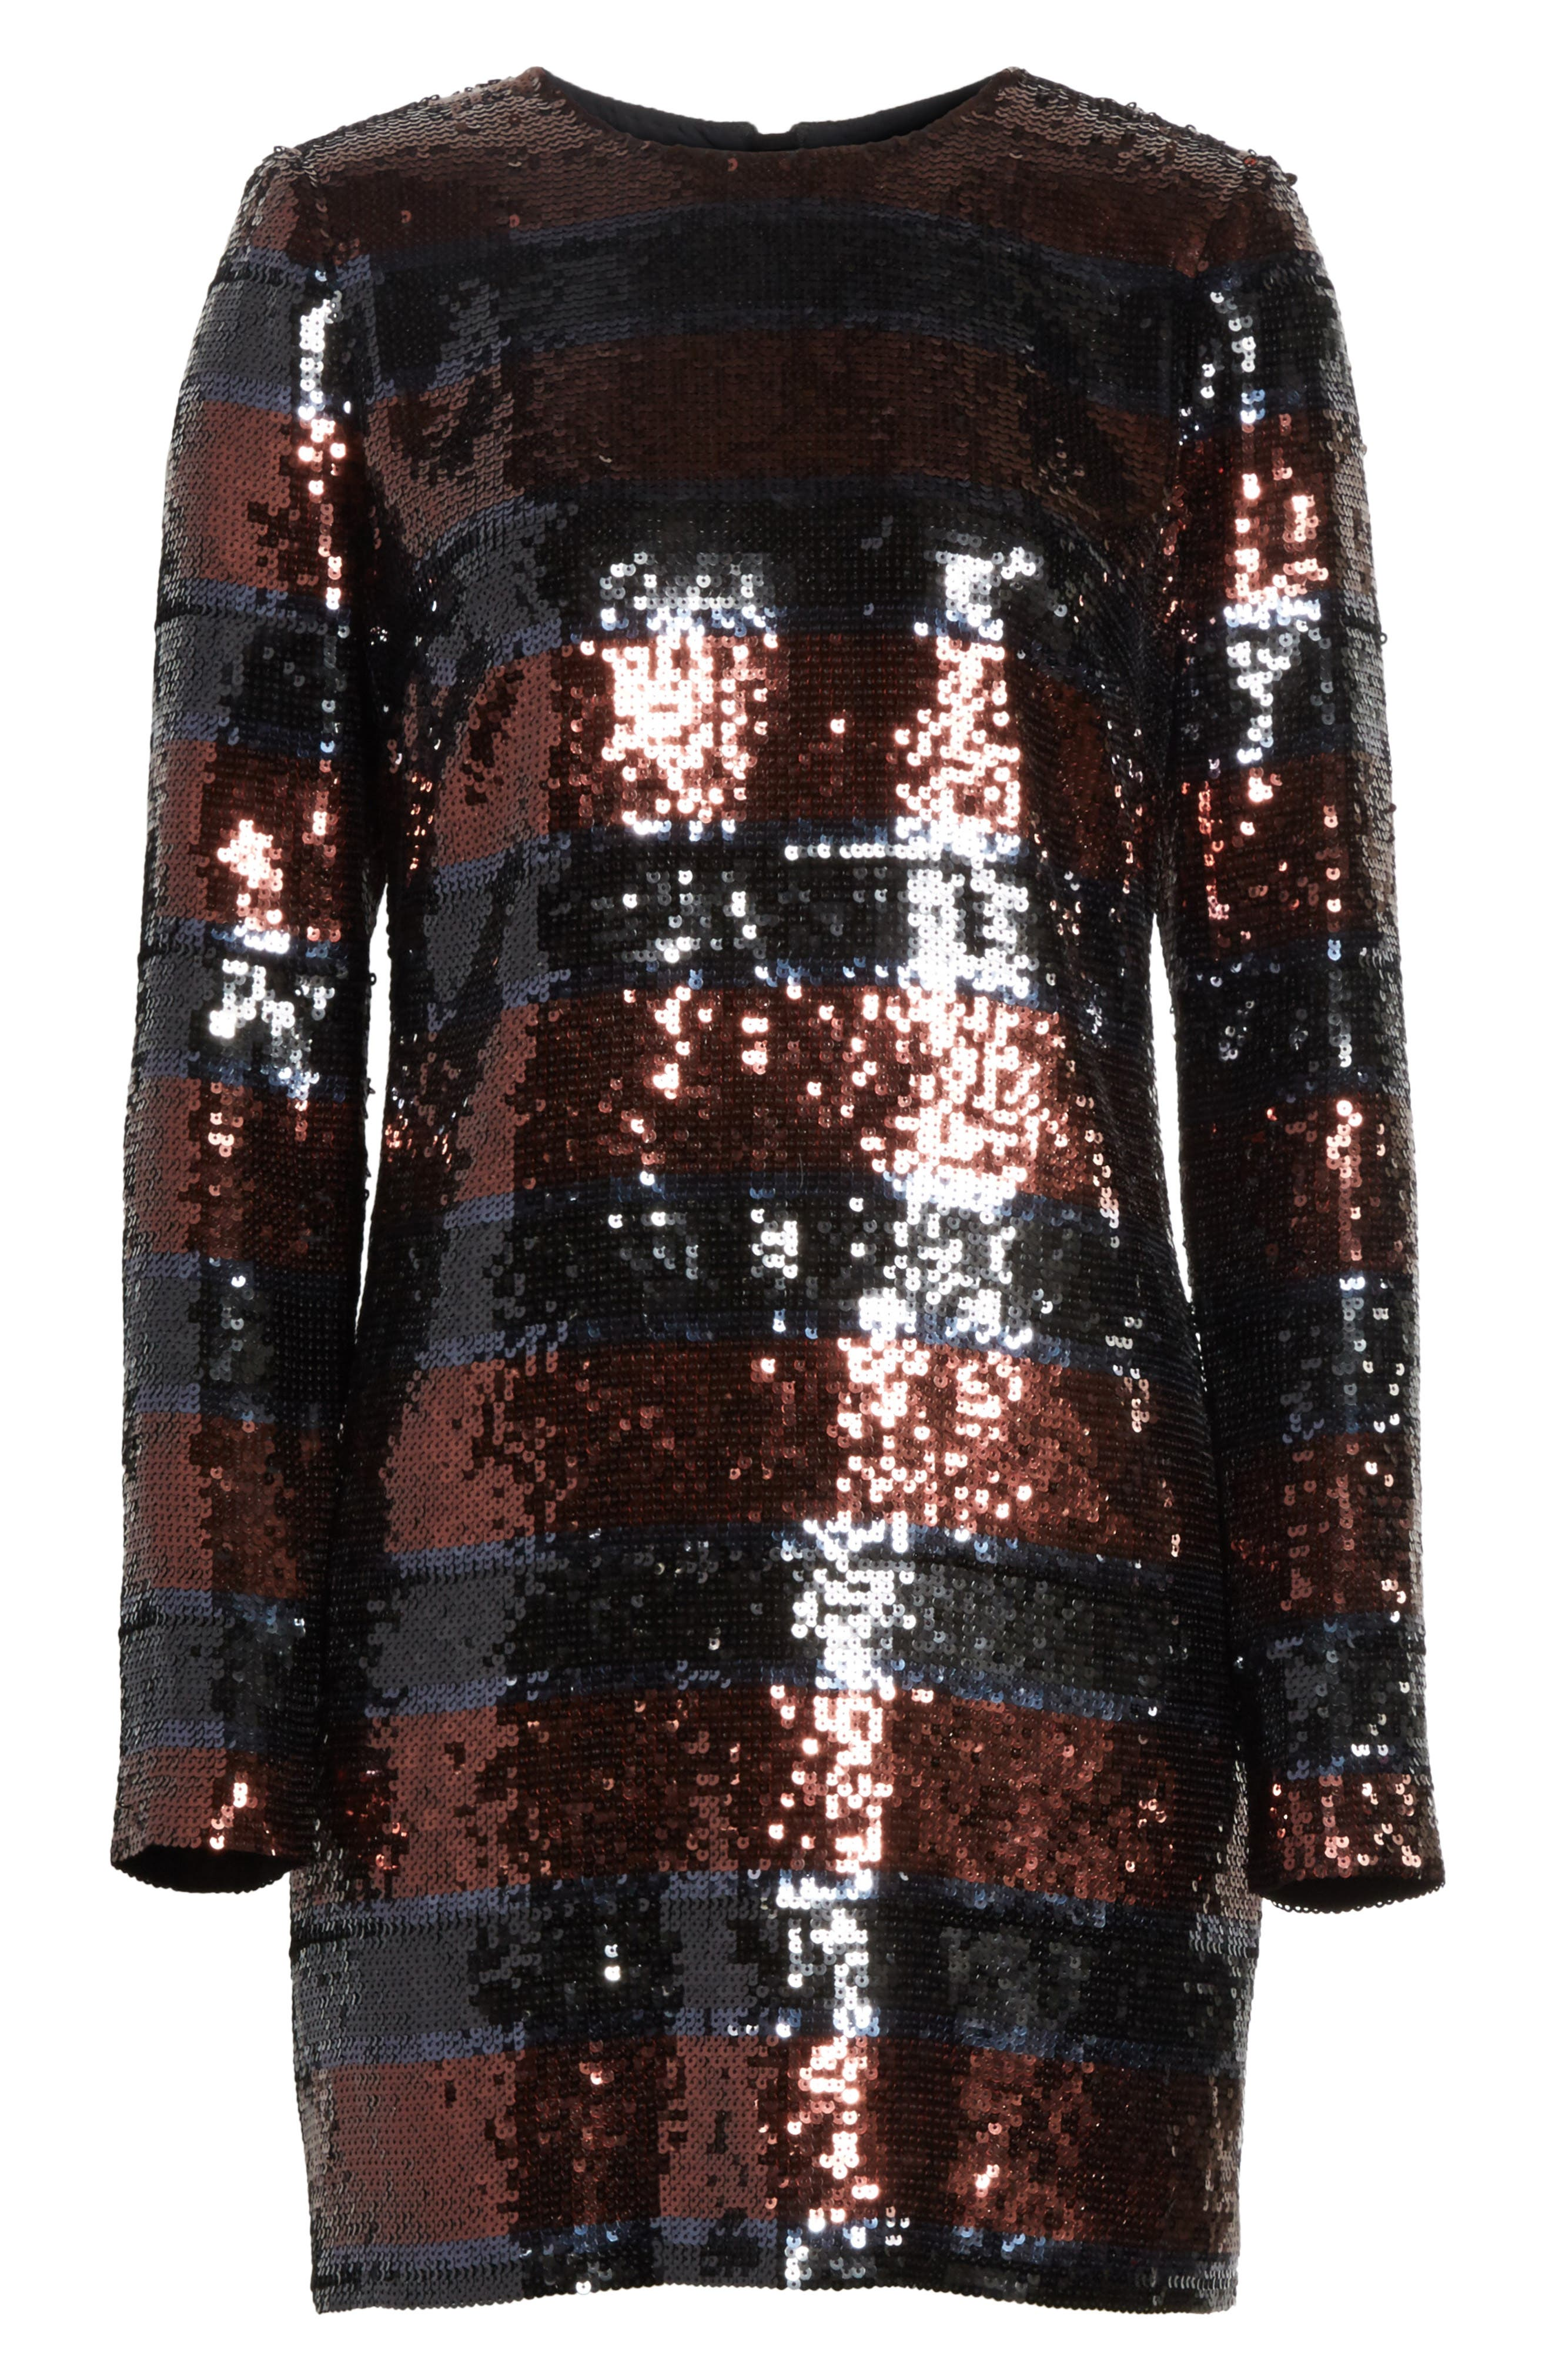 Breakers Sequin Dress,                             Alternate thumbnail 6, color,                             Dark Red/ Black